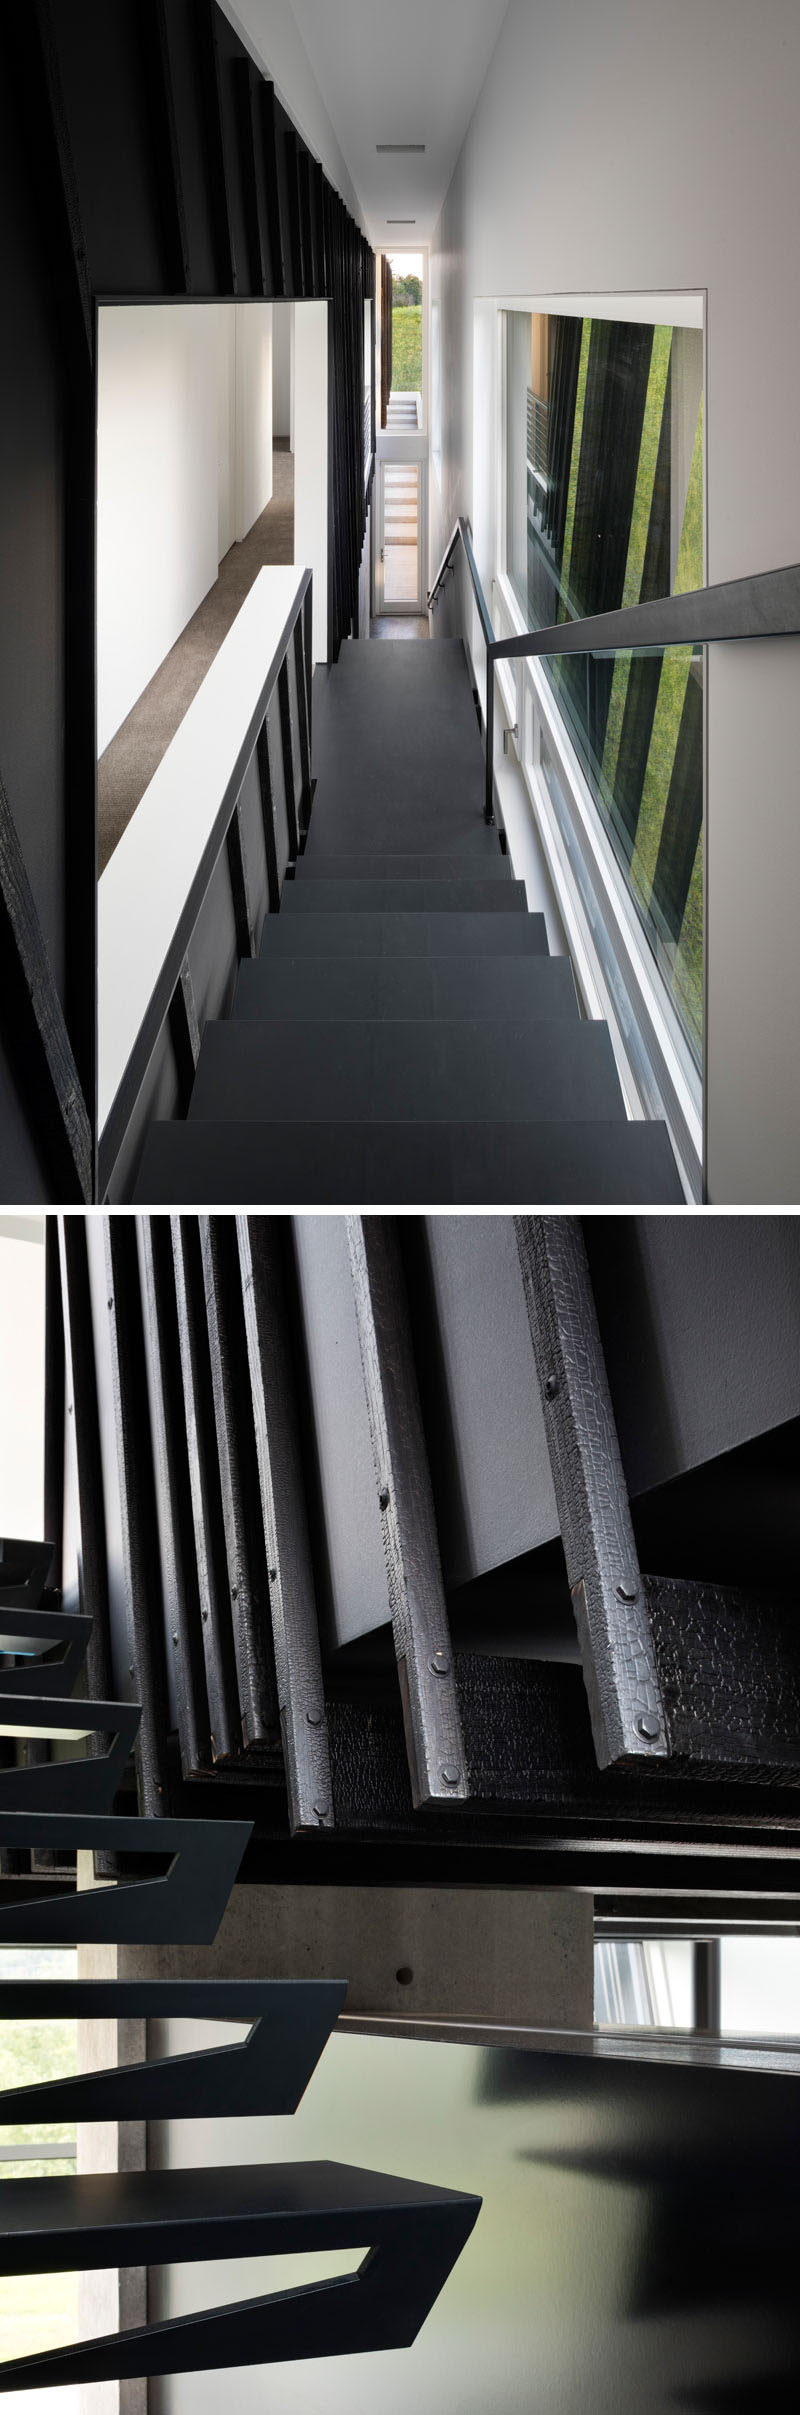 A black staircase leads up to the upper floor of this modern house, while windows provide plenty of natural light. #BlackStairs #ModernHouse #StairDesign